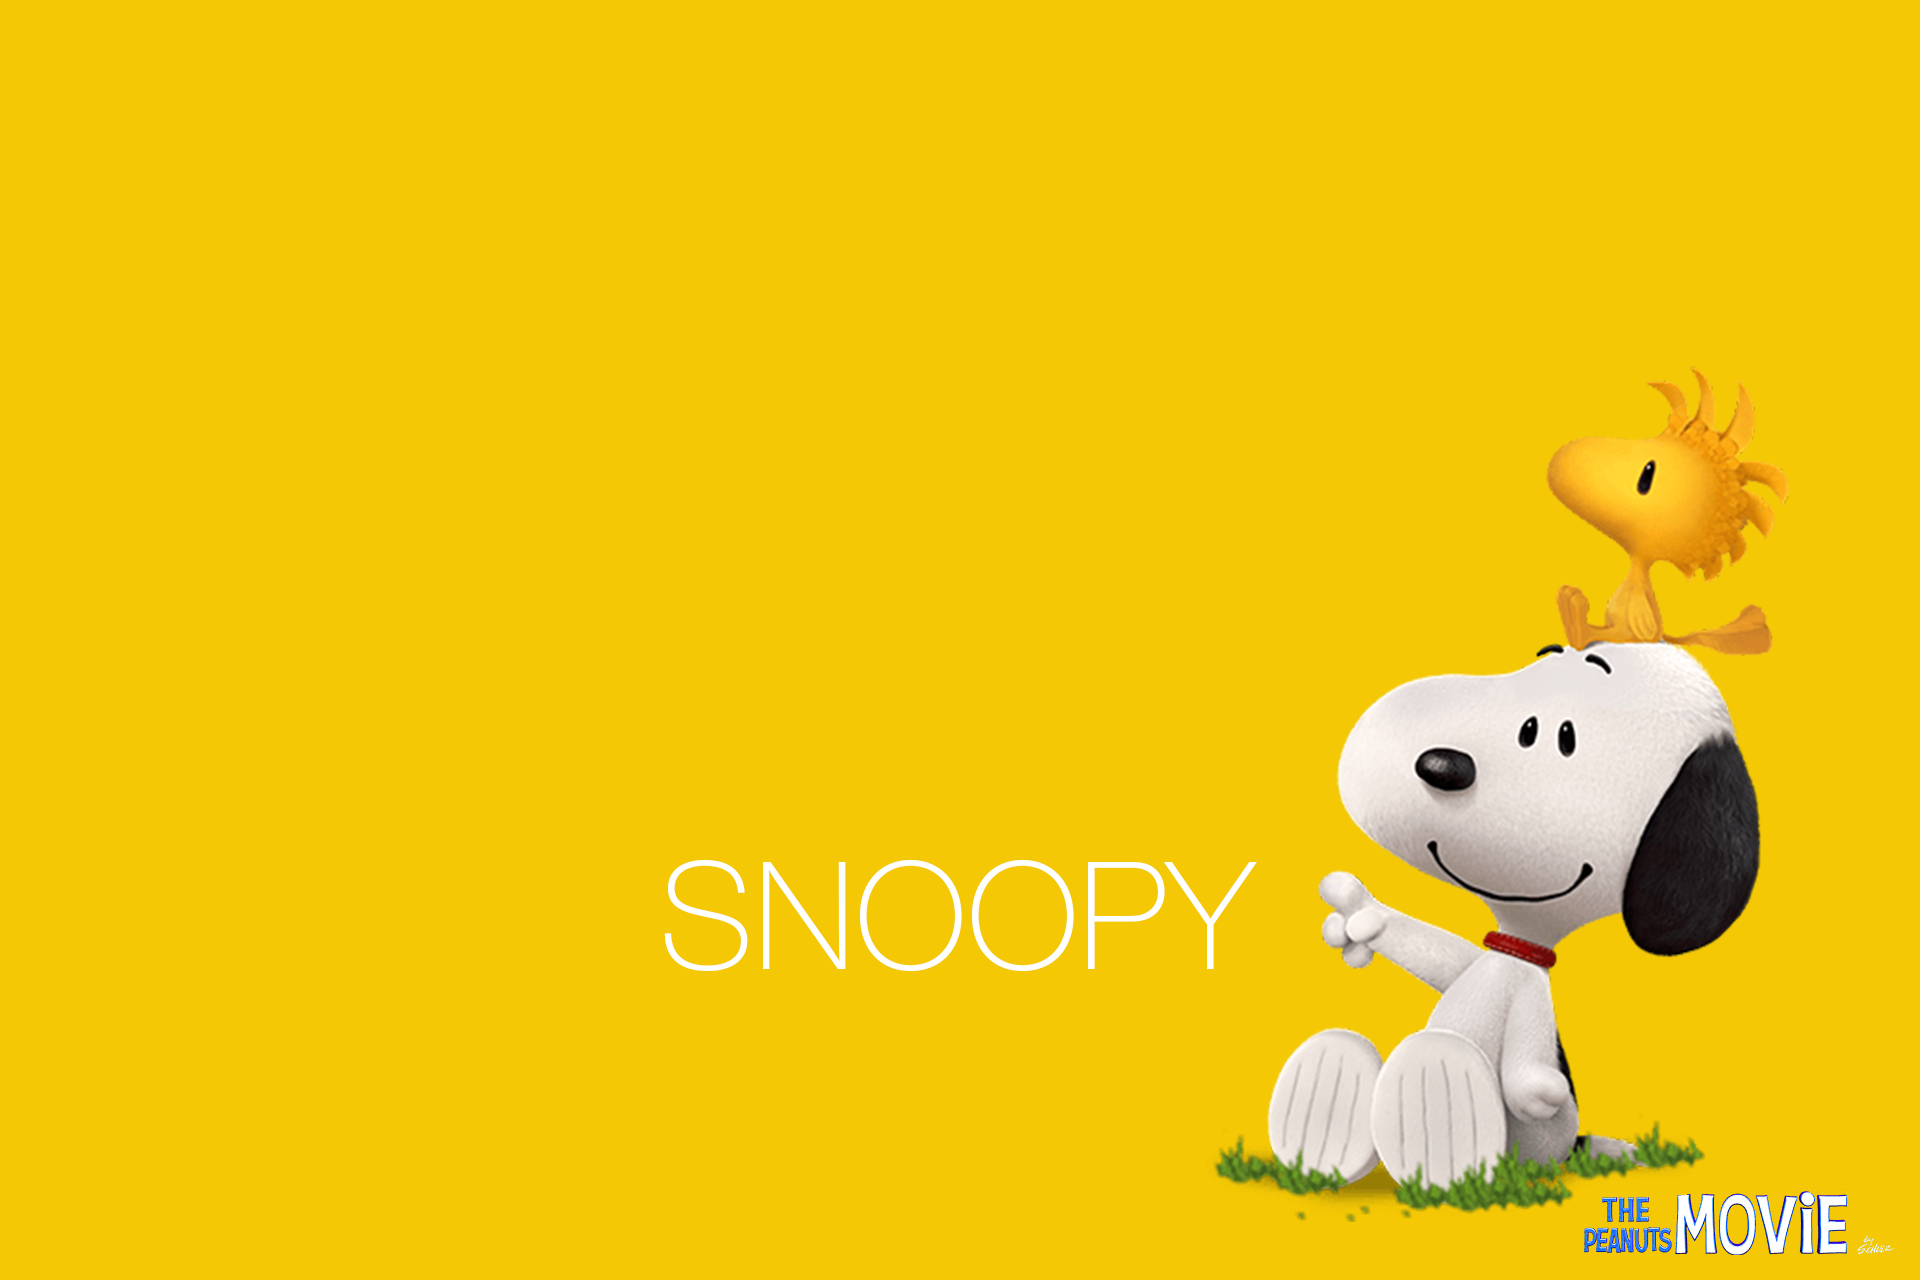 snoppy hd desktop wallpaper volganga Halloween Pumpkin Clip Art Charlie Brown Halloween Clip Art